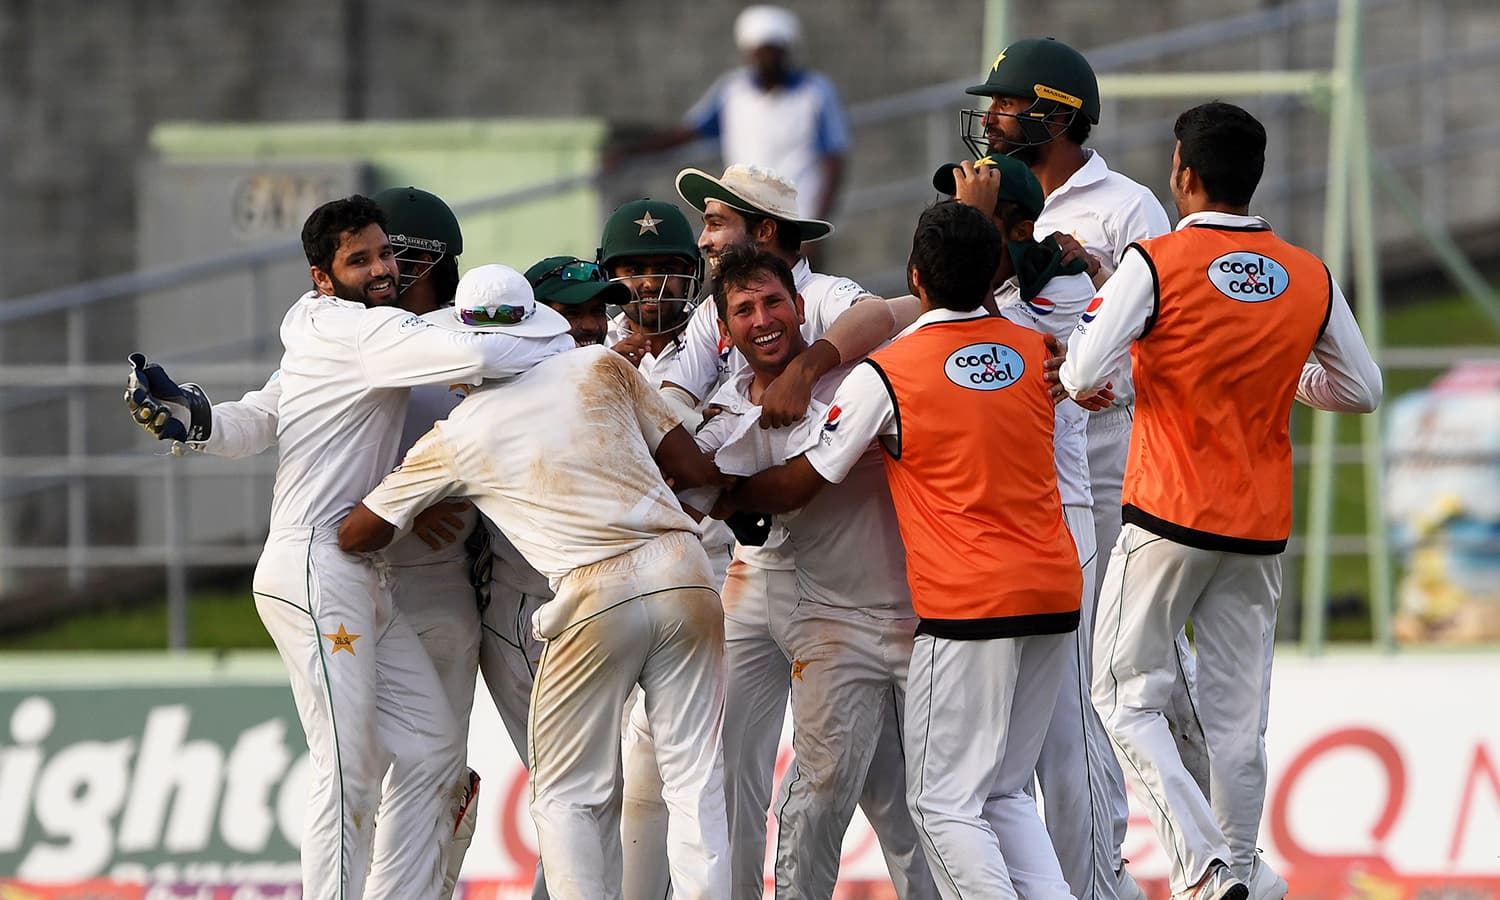 The team celebrates the fall of another wicket as they inched closer to the win. — AFP